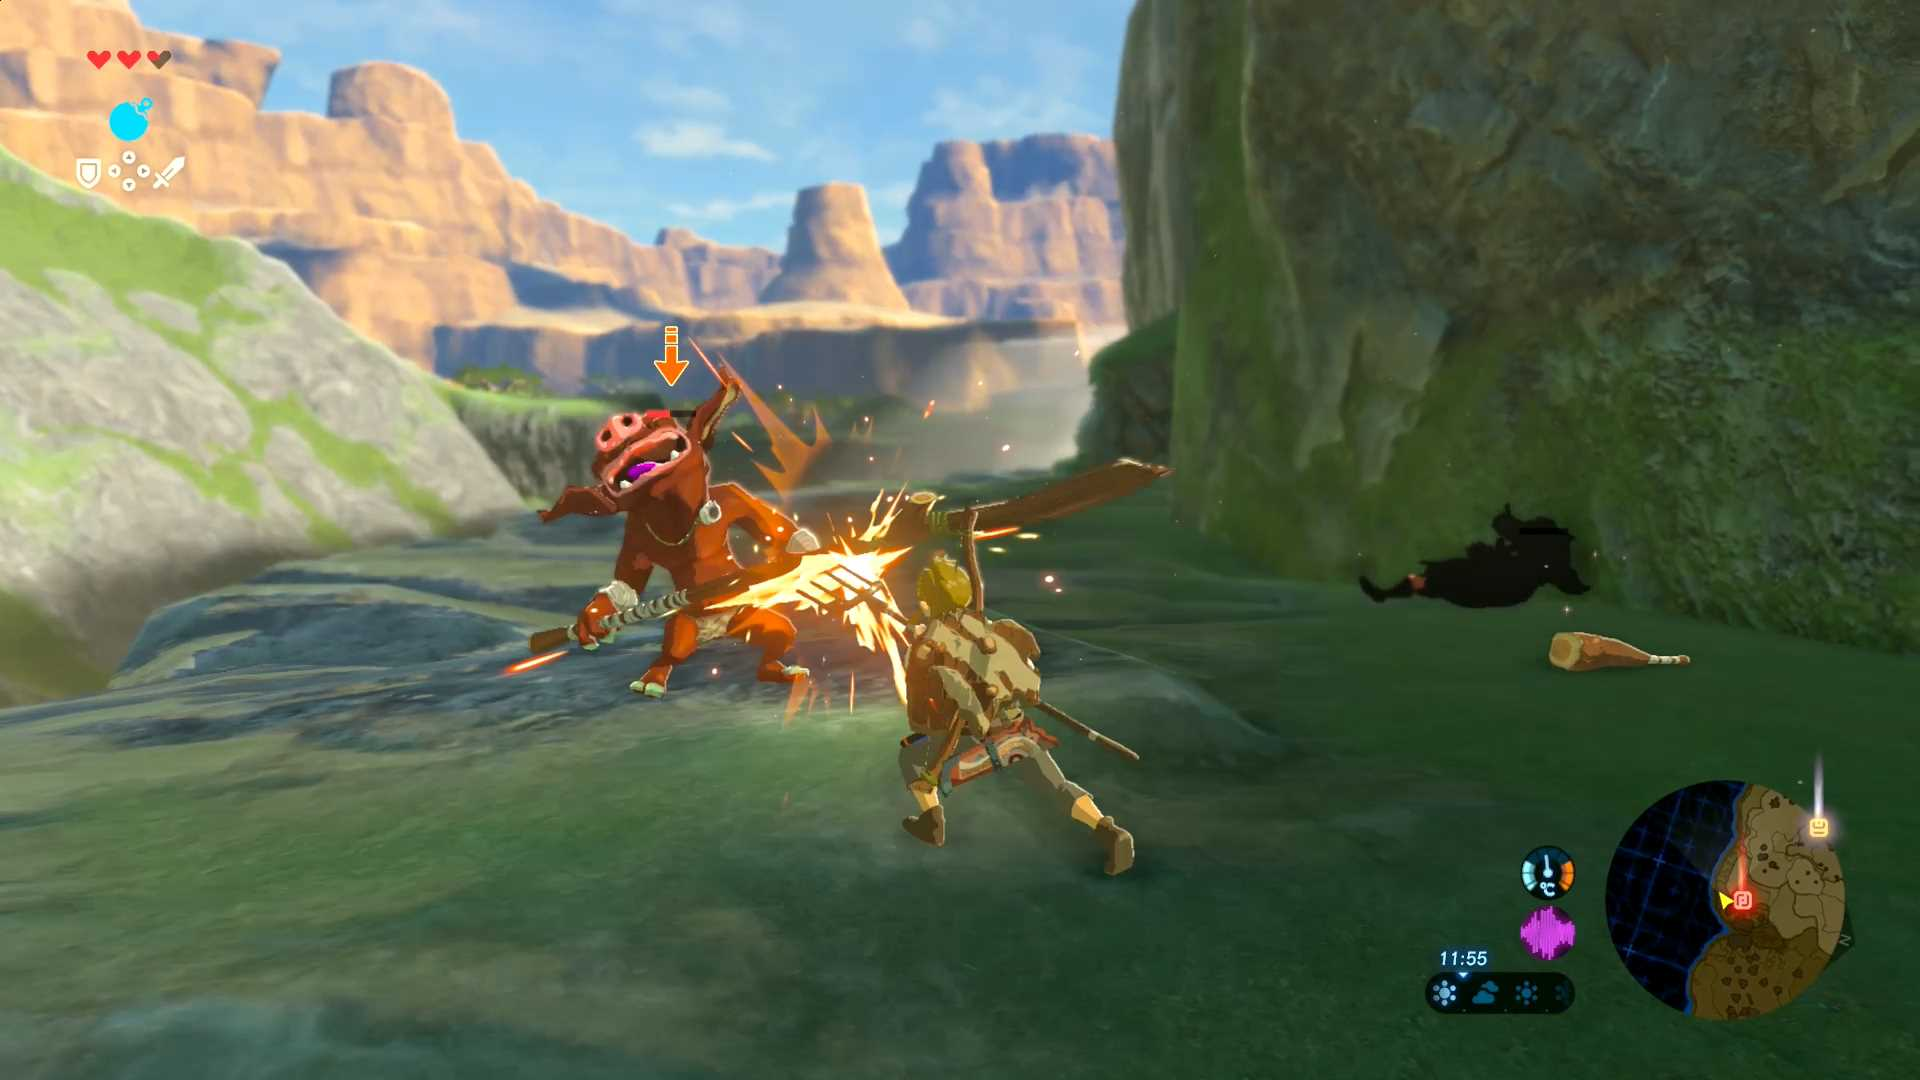 breath of the wild combat